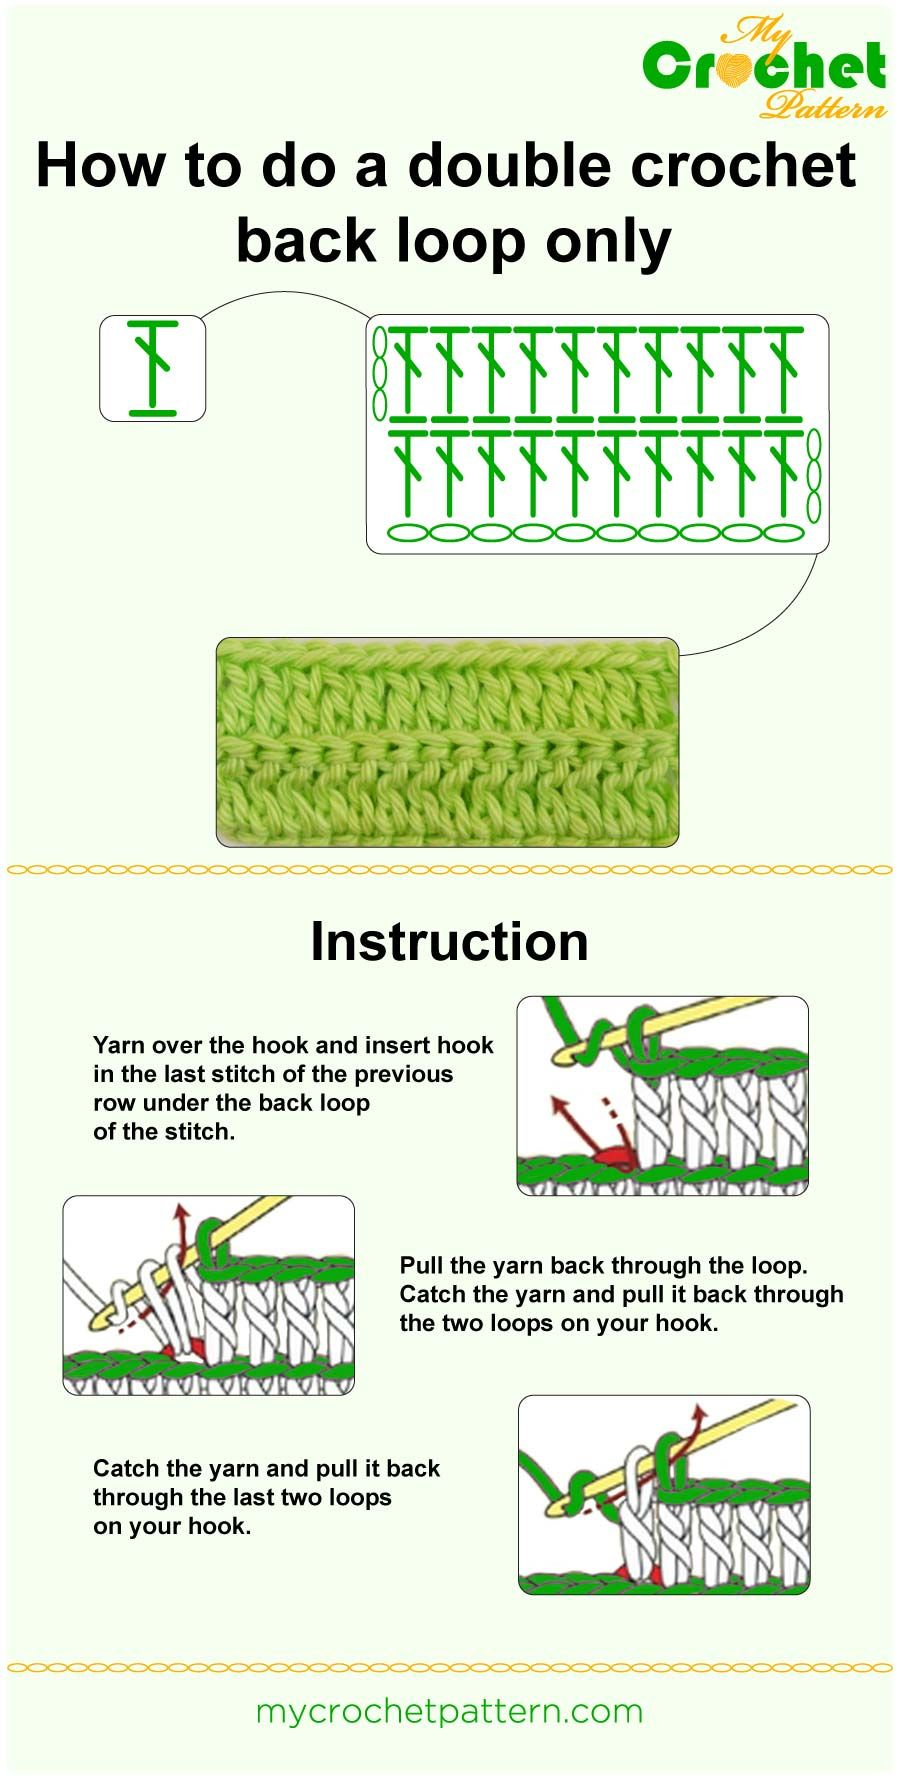 How to work with the front and back loop Instructions for beginners